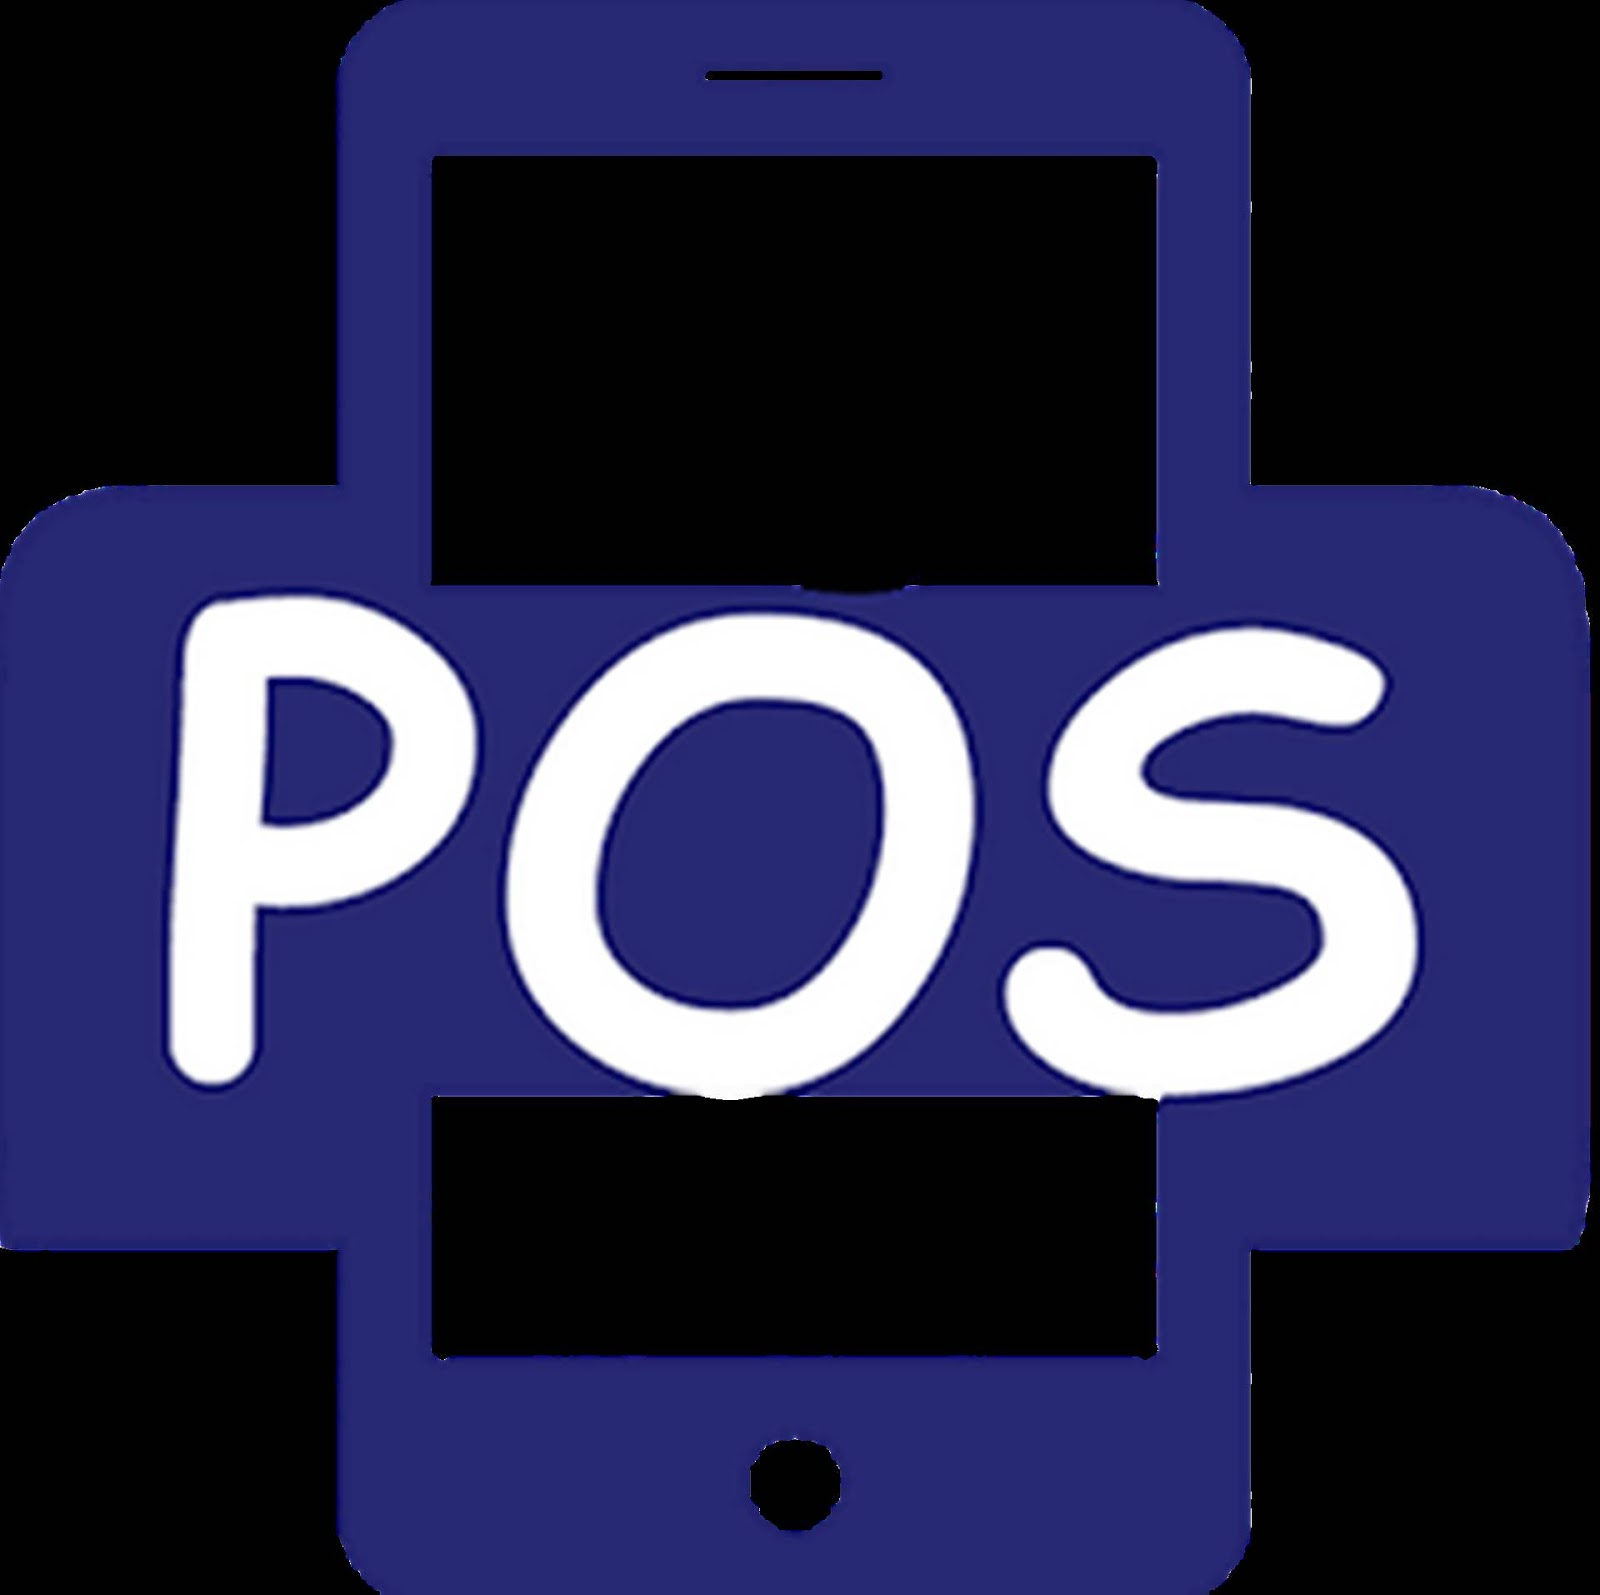 DigiPOS: Get Paid to do Mobile Money and Credit Transfers